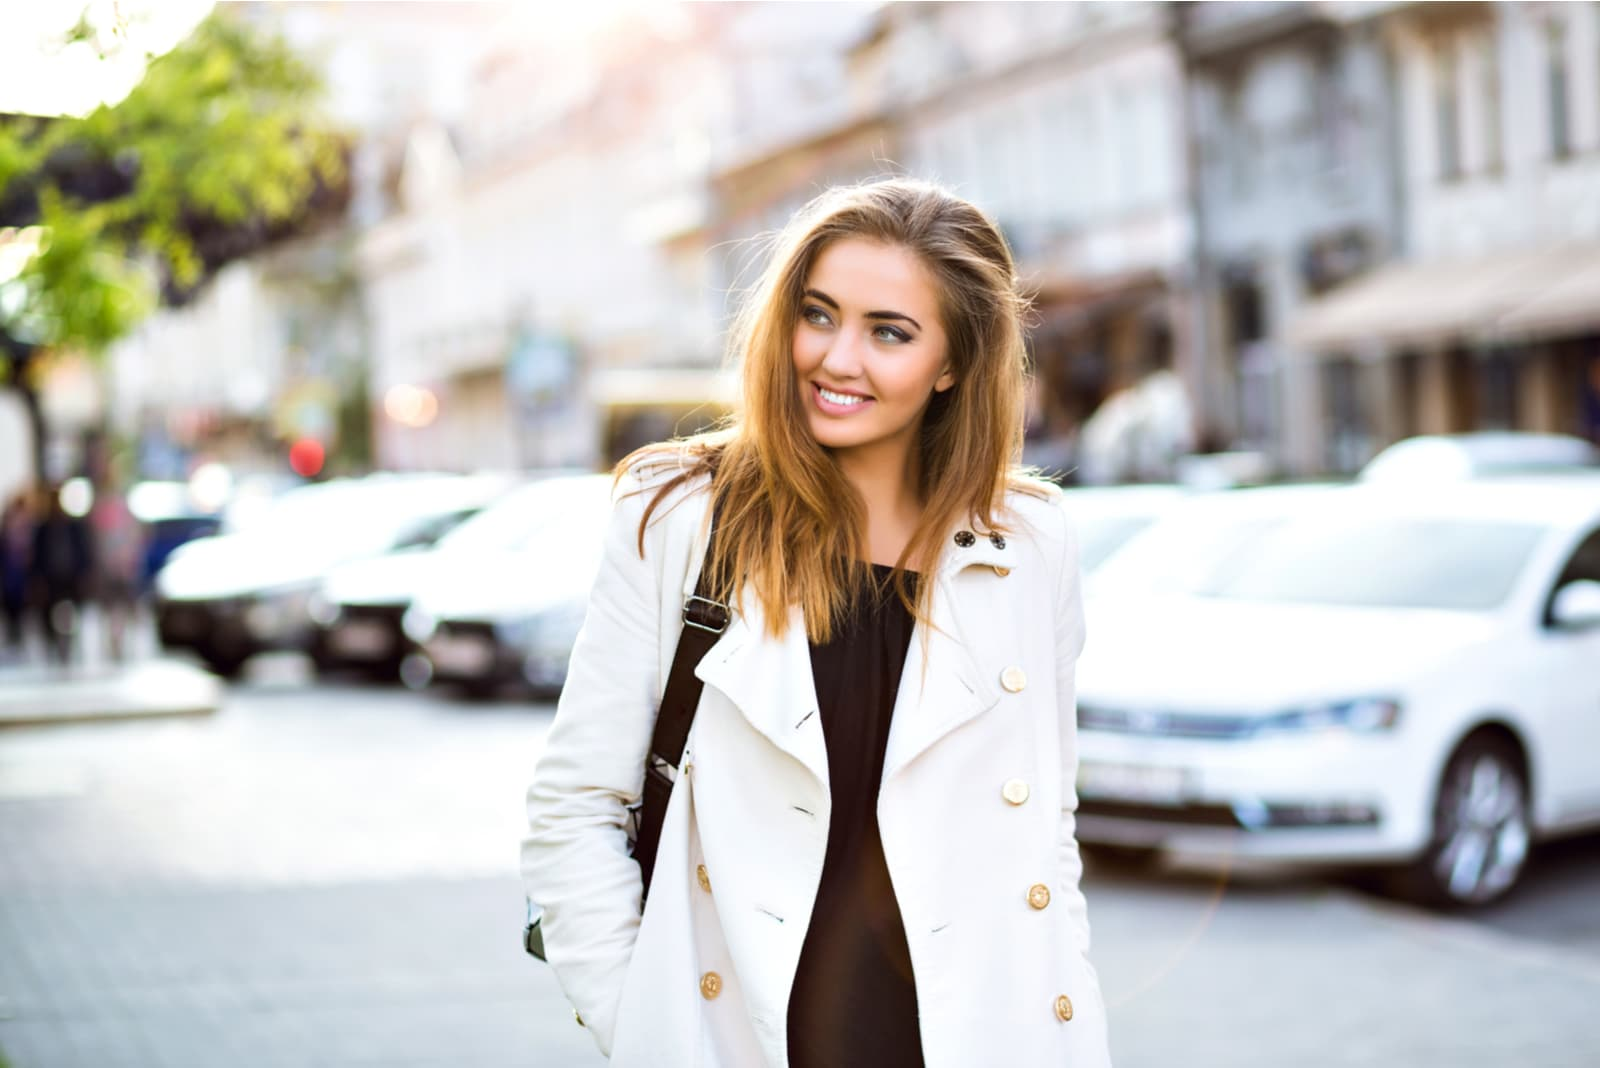 a woman with long brown hair in a white coat walks down the street